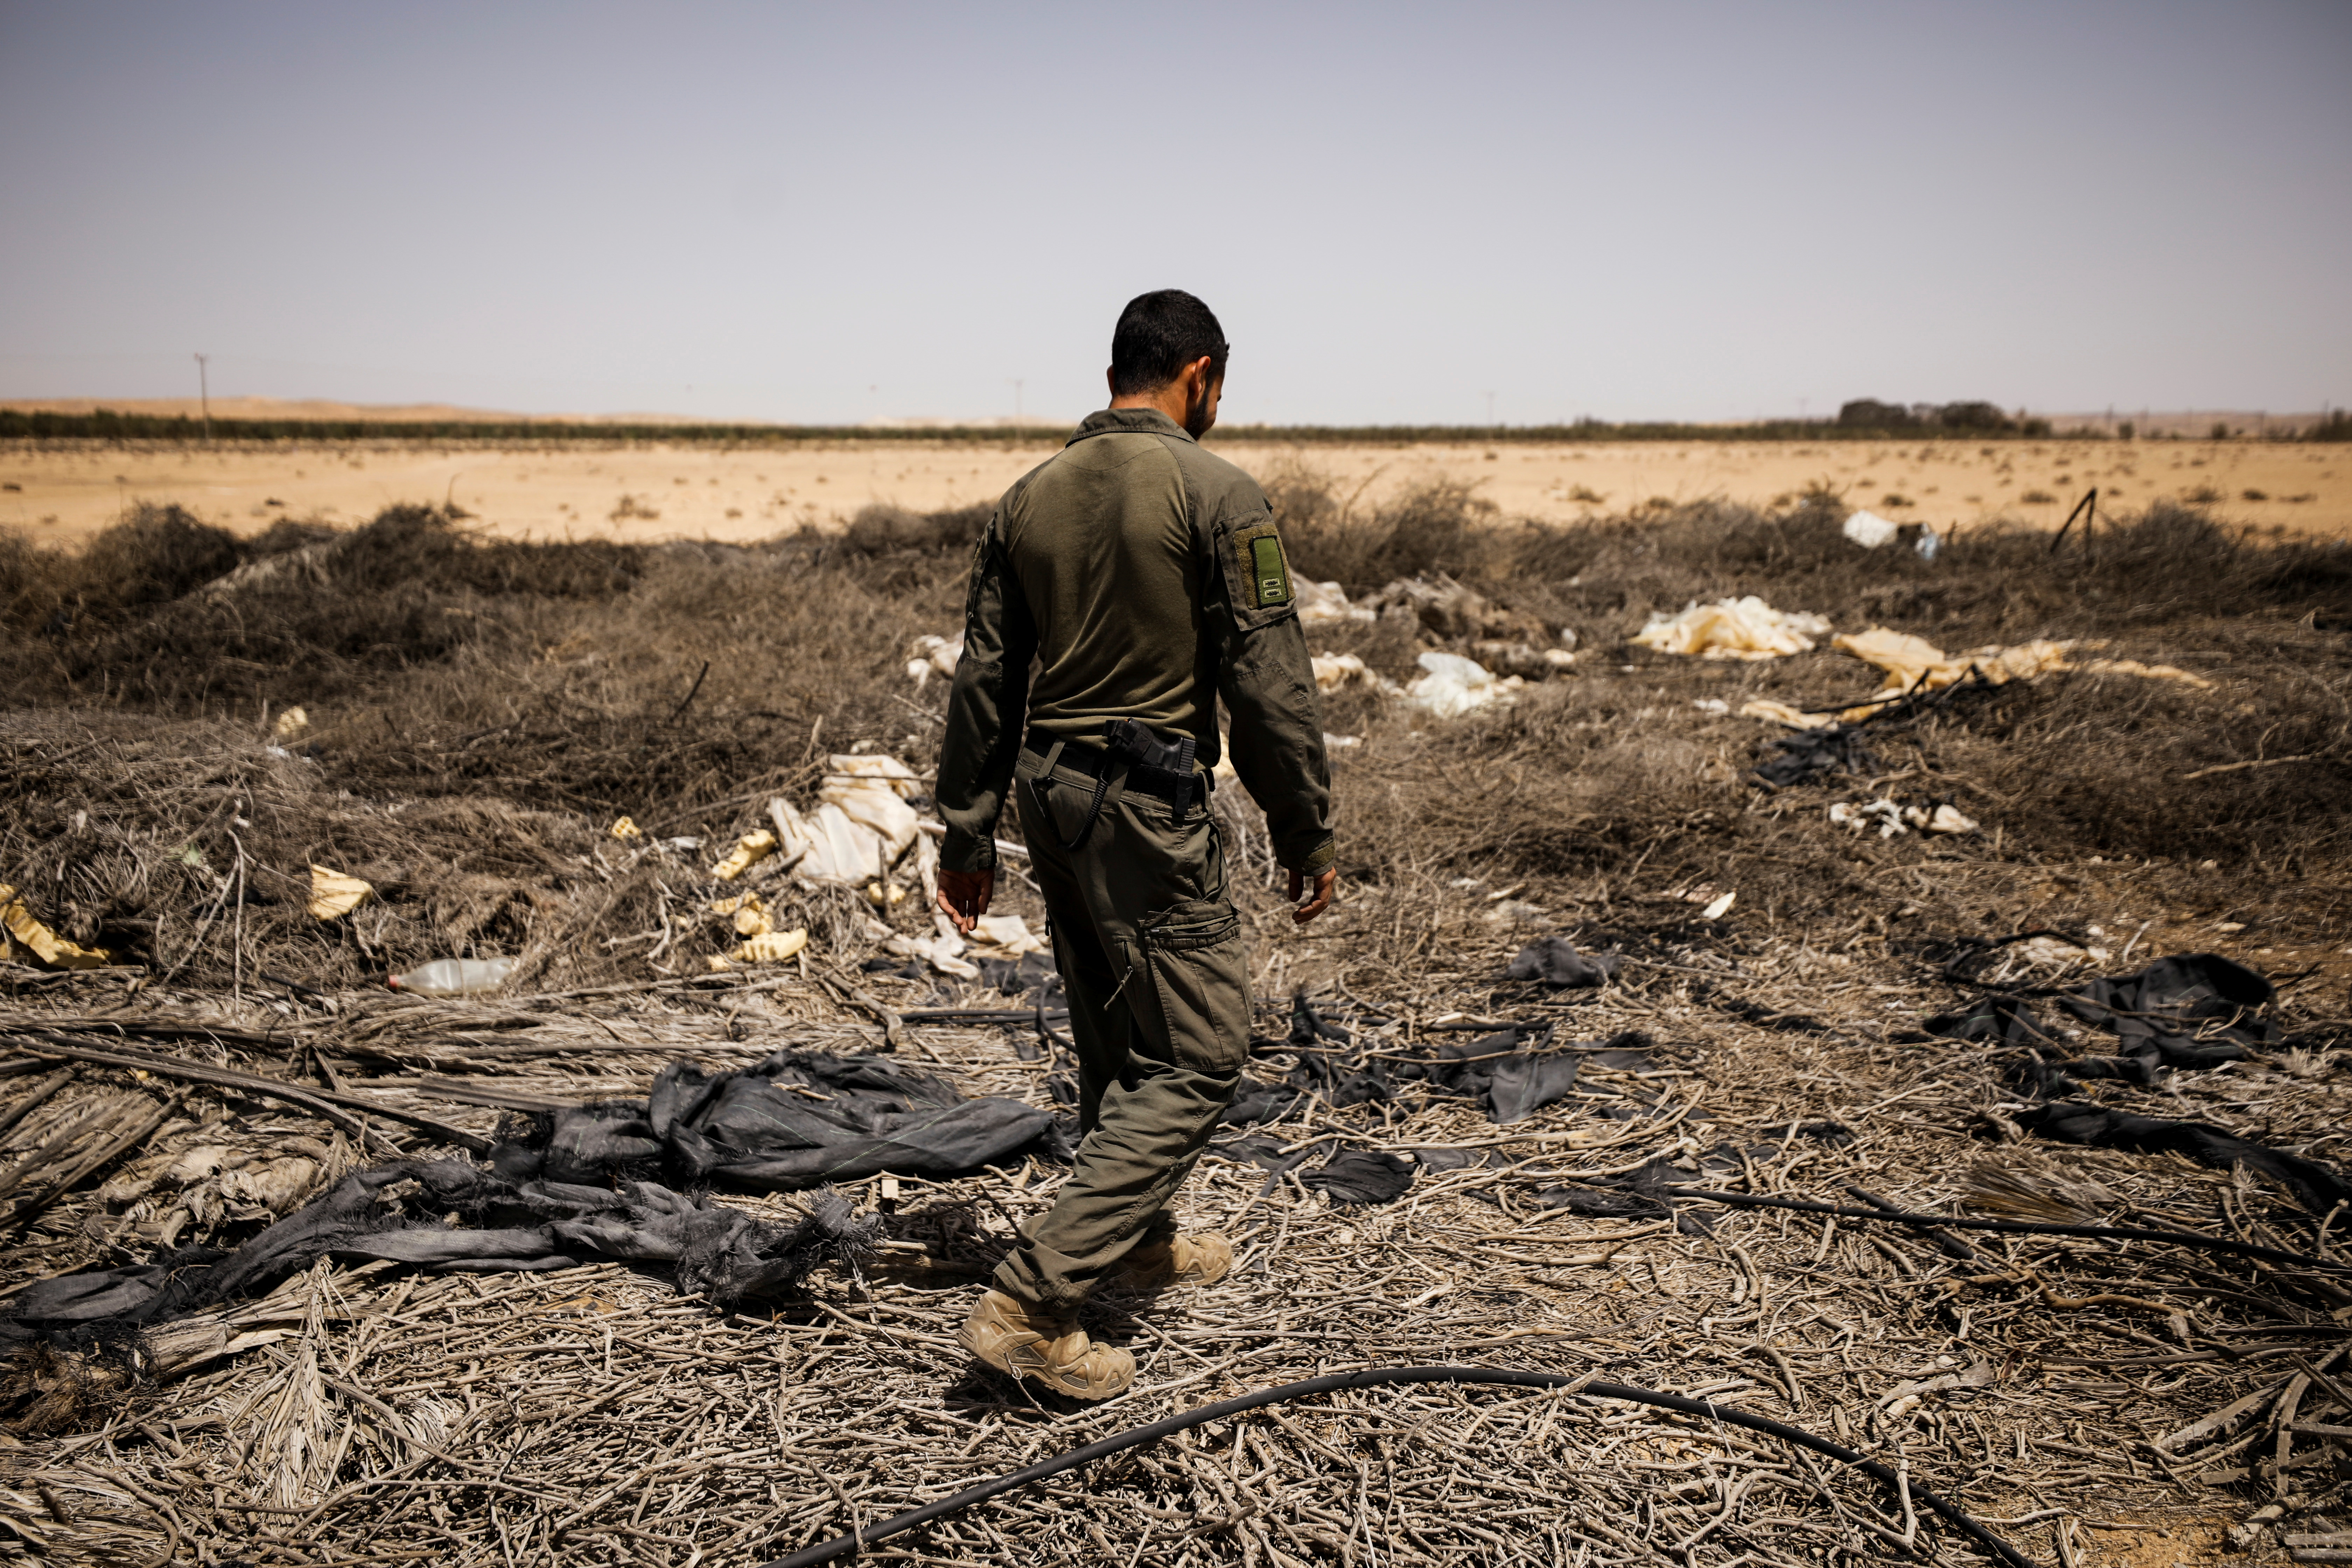 An Israeli soldier surveys the area after a Syrian missile exploded in southern Israel, the Israeli military said, near Ashalim, southern Israel April 22, 2021. REUTERS/Amir Cohen